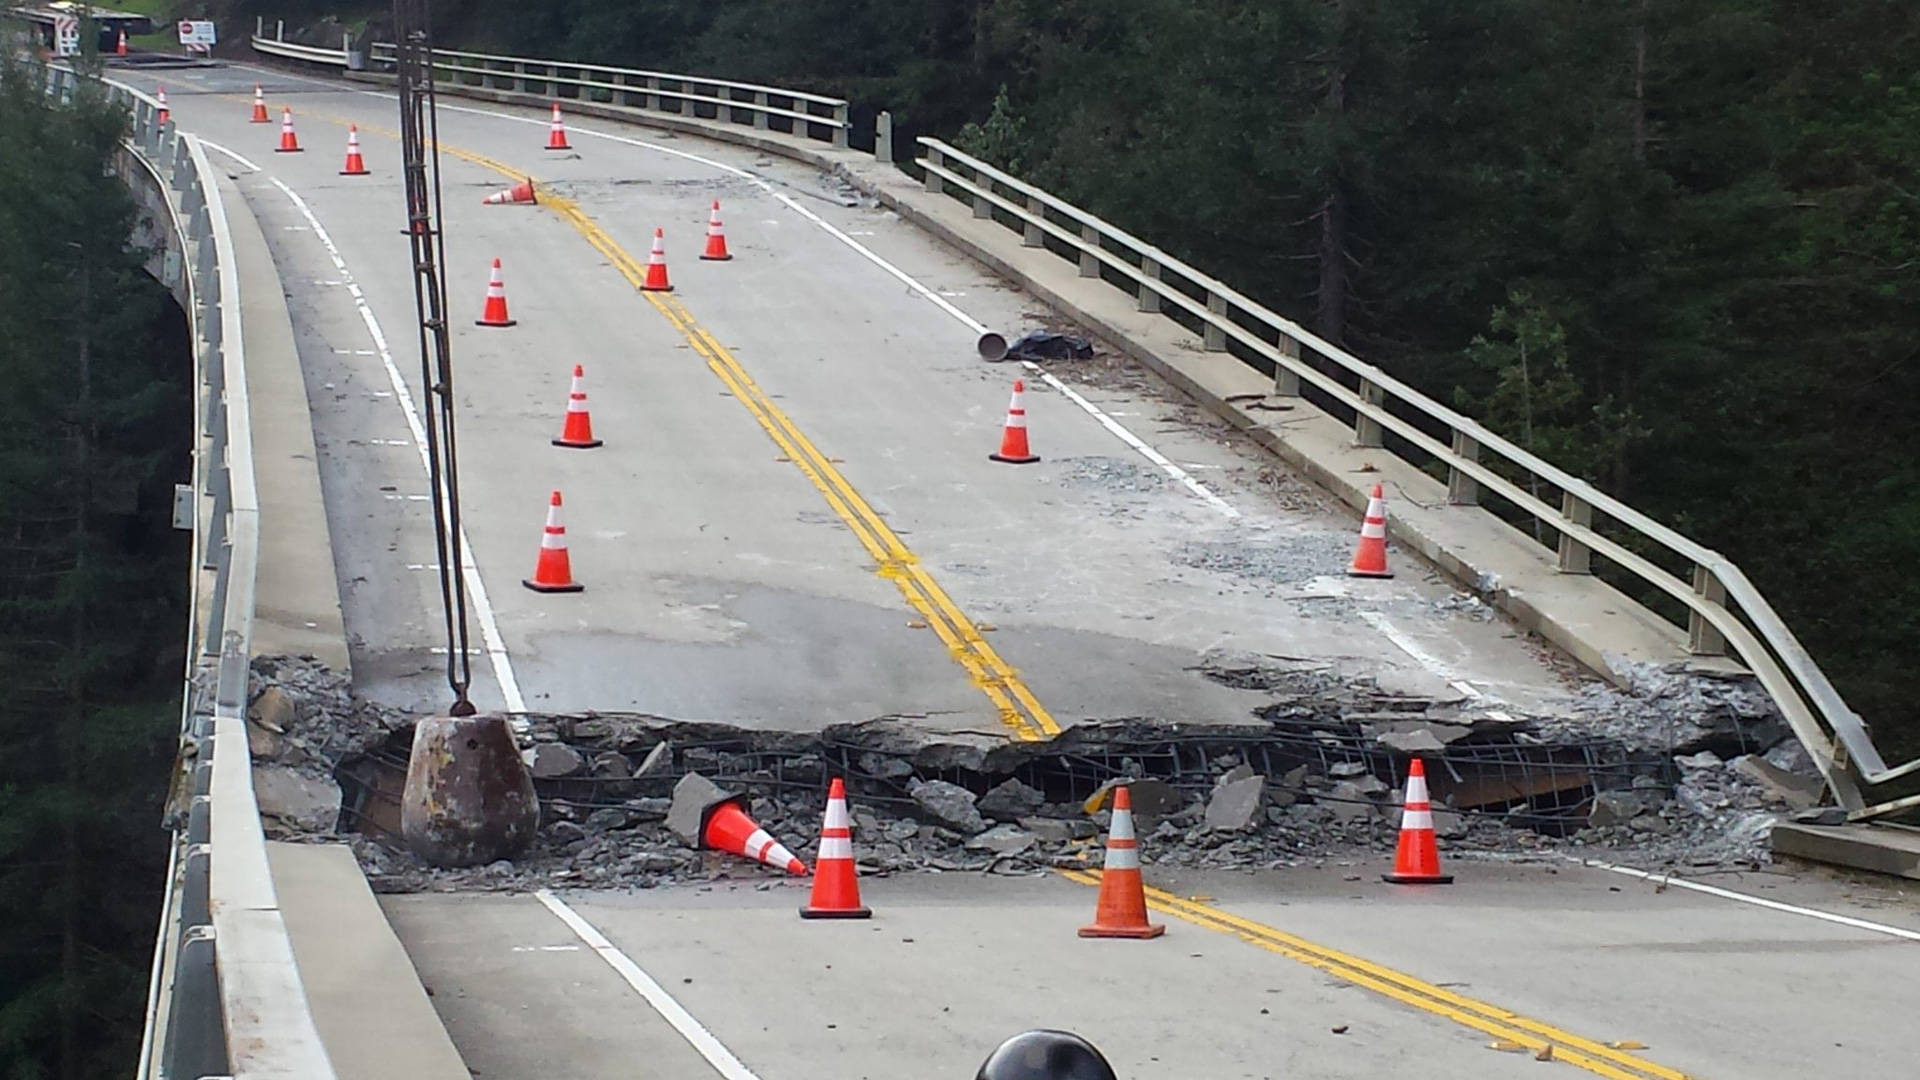 Demolition work takes place on the damaged Pfeiffer Canyon Bridge on March 16, 2017. Caltrans